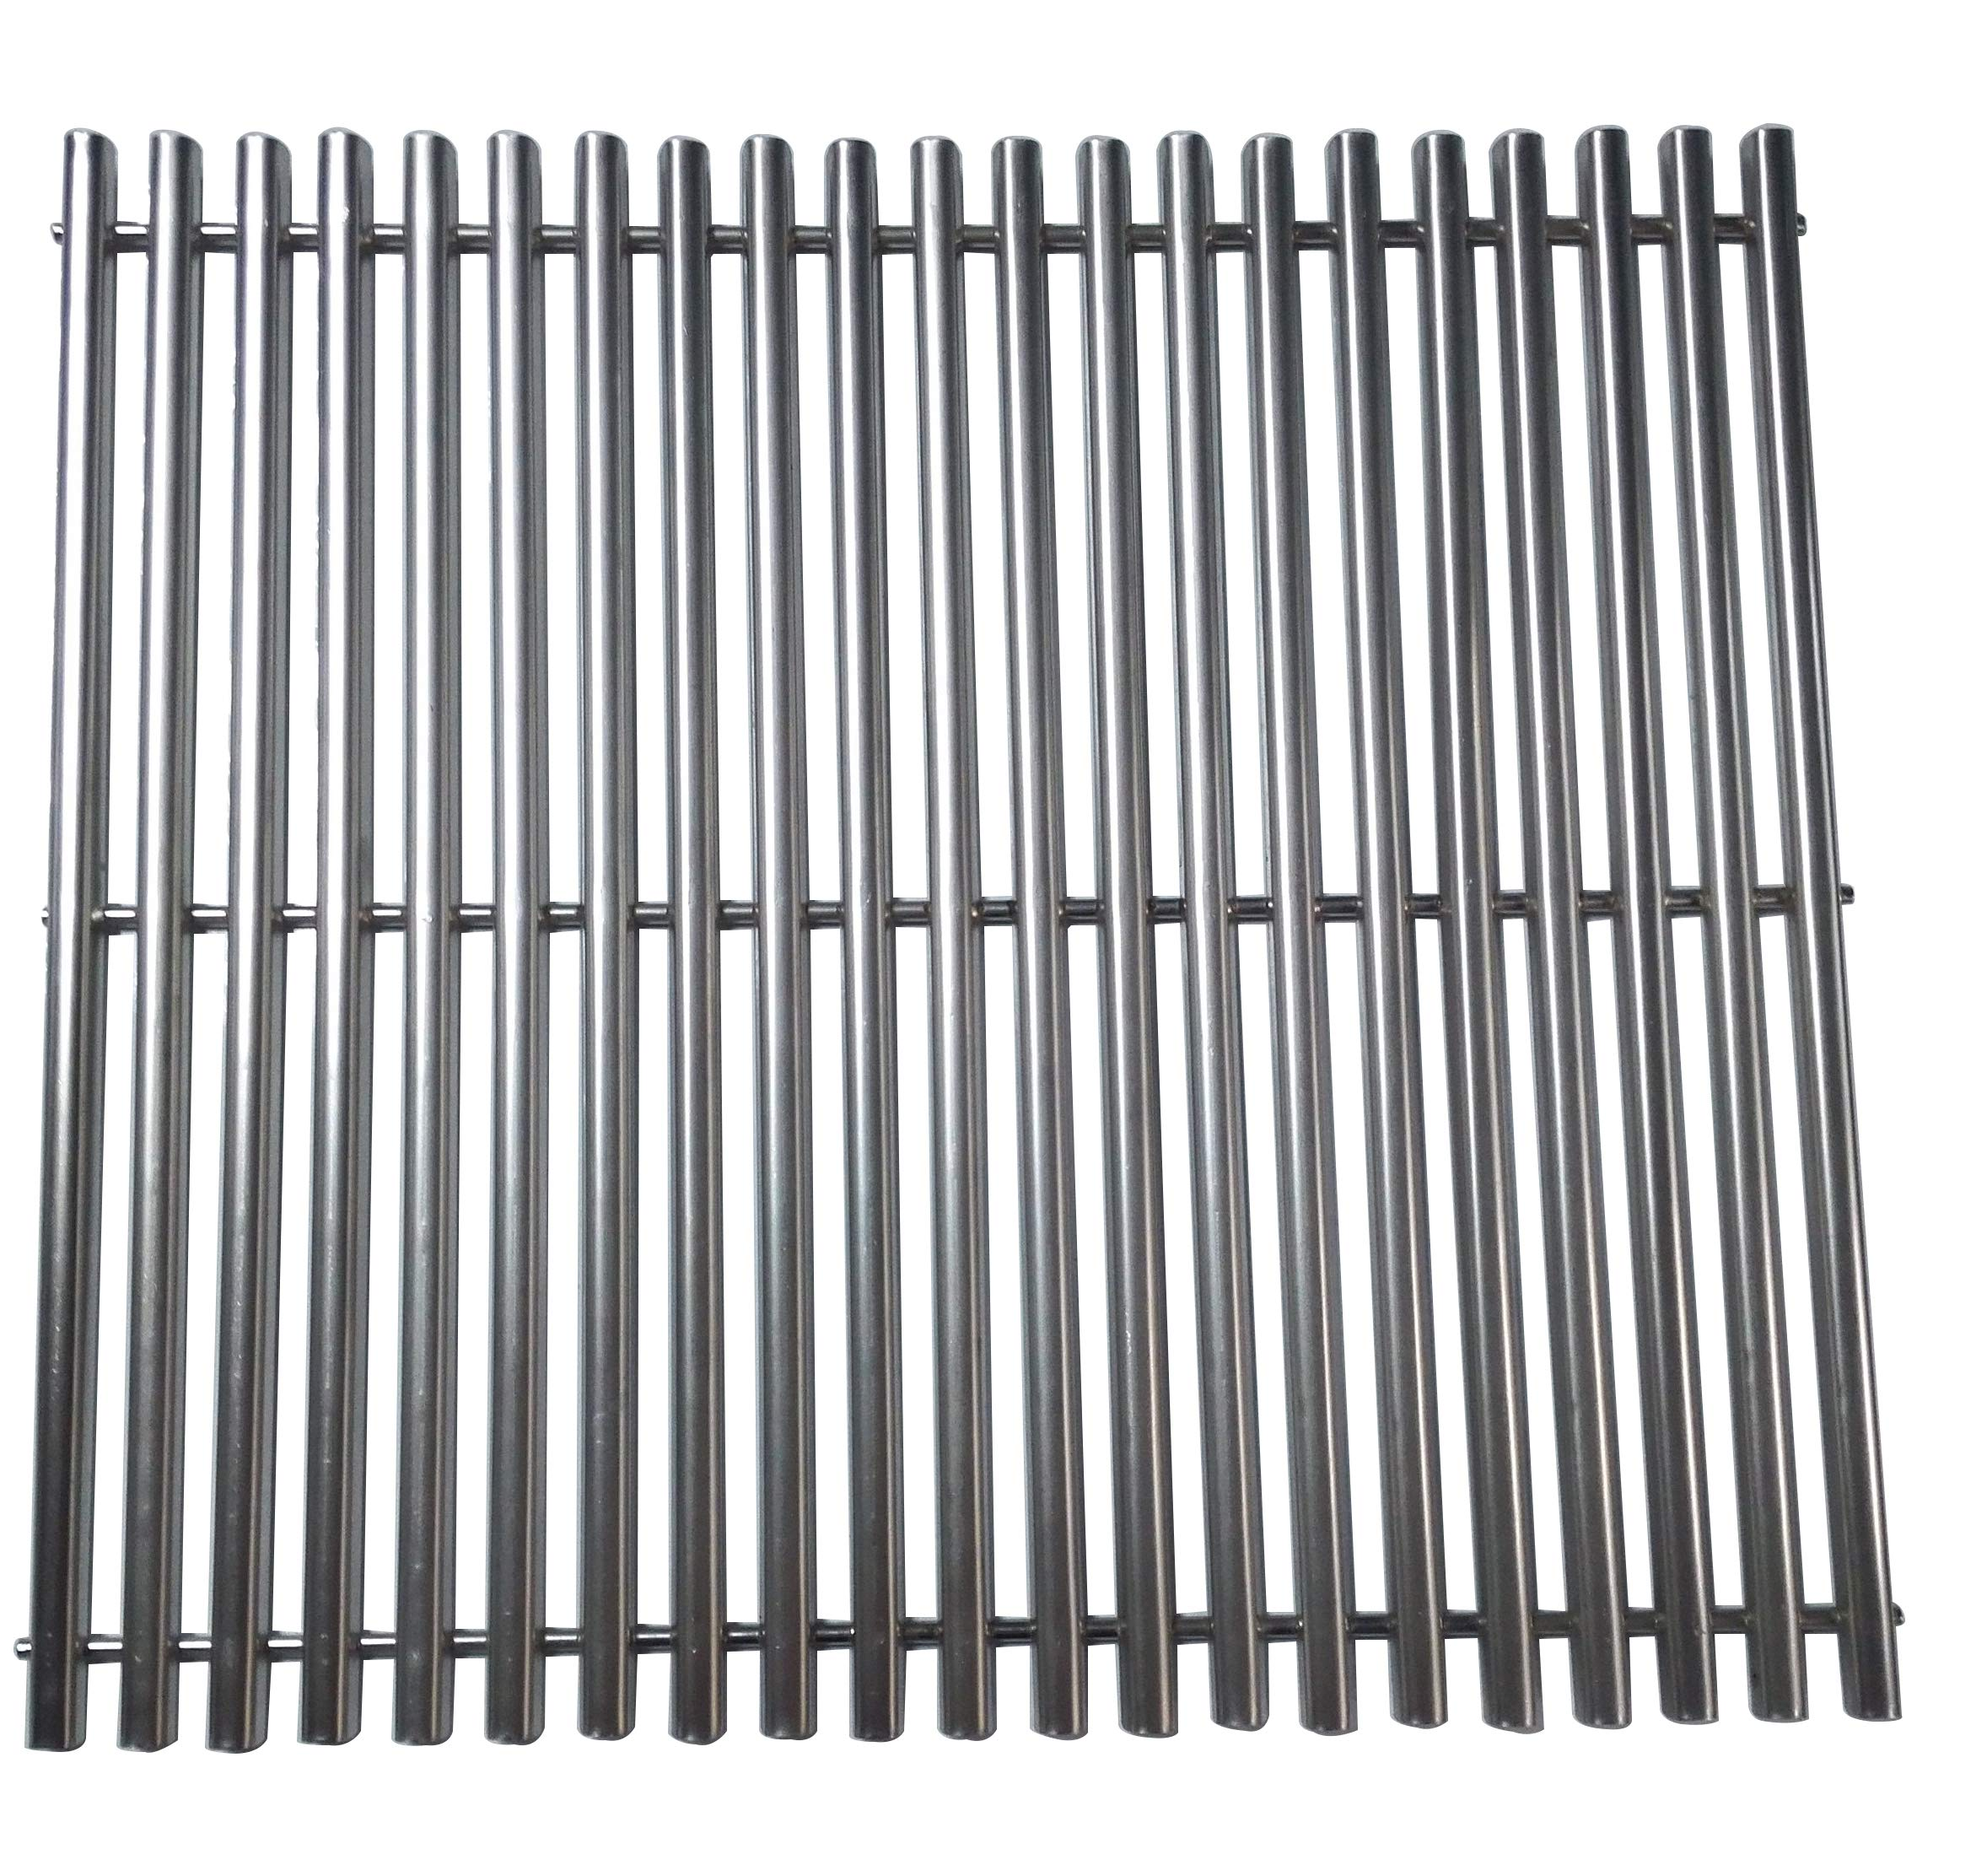 Cookingstar 22 Series Stainless Stell Grill Grate for Traeger Pellet Grills BAC366 by Cookingstar